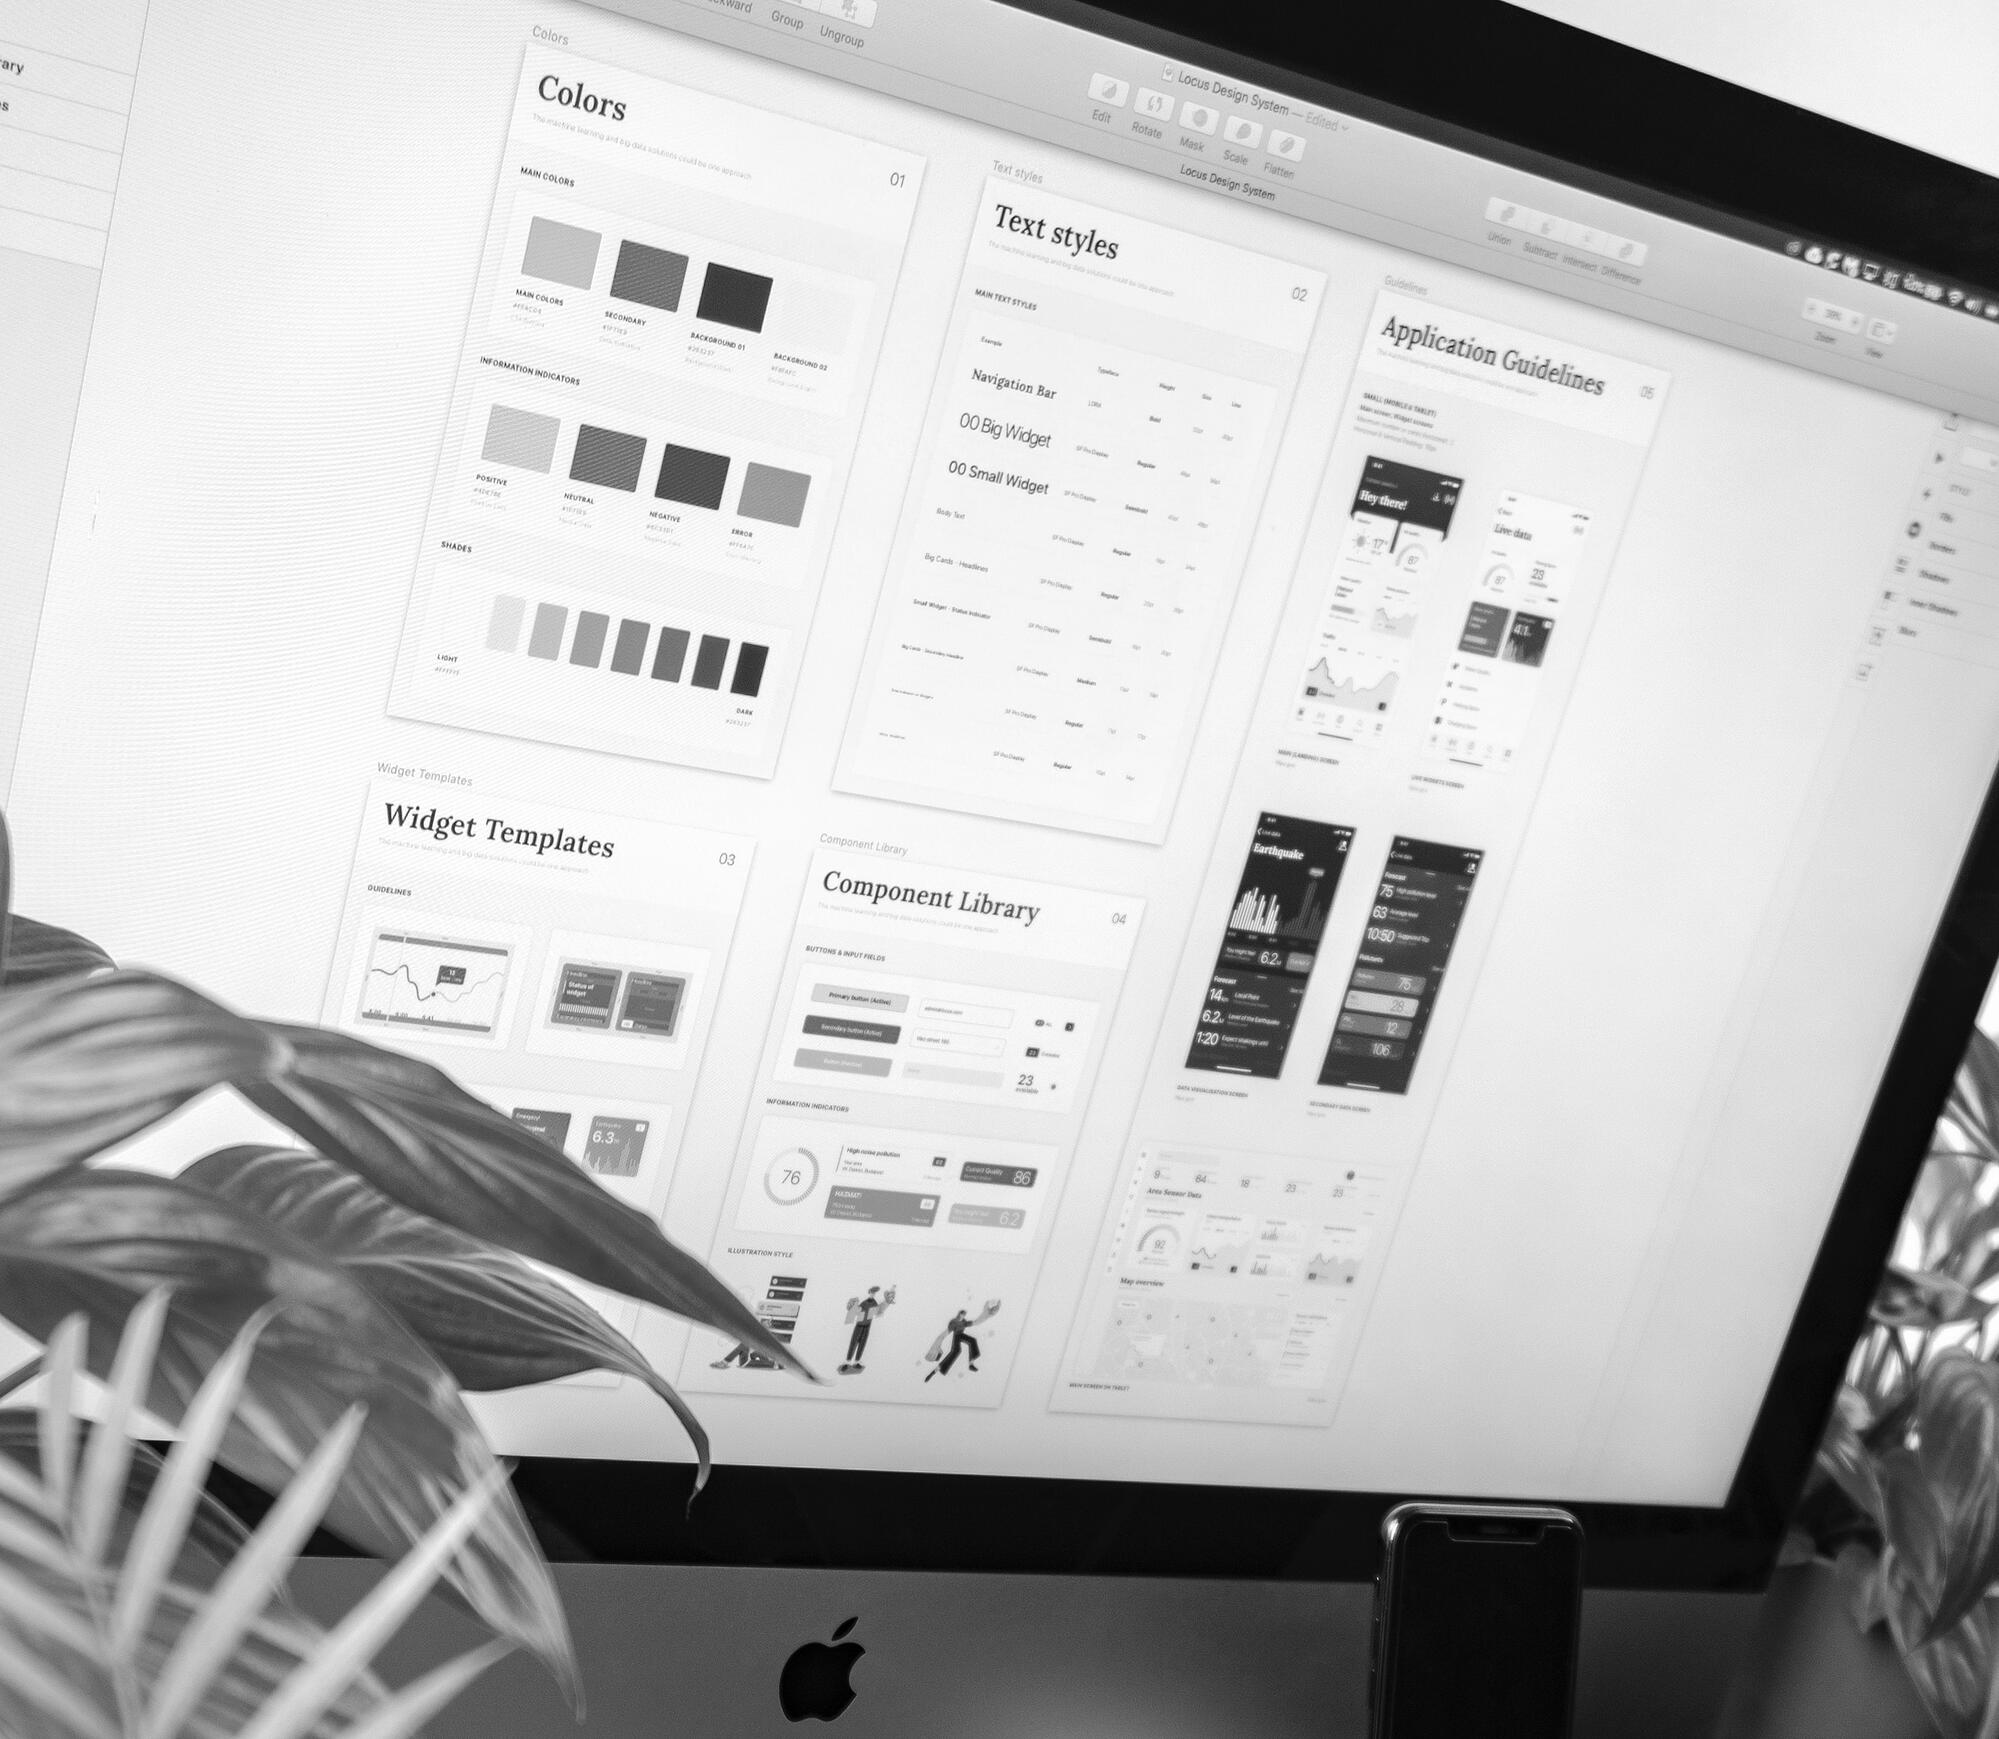 Design tools 2019: Are you still using Photoshop to design websites?